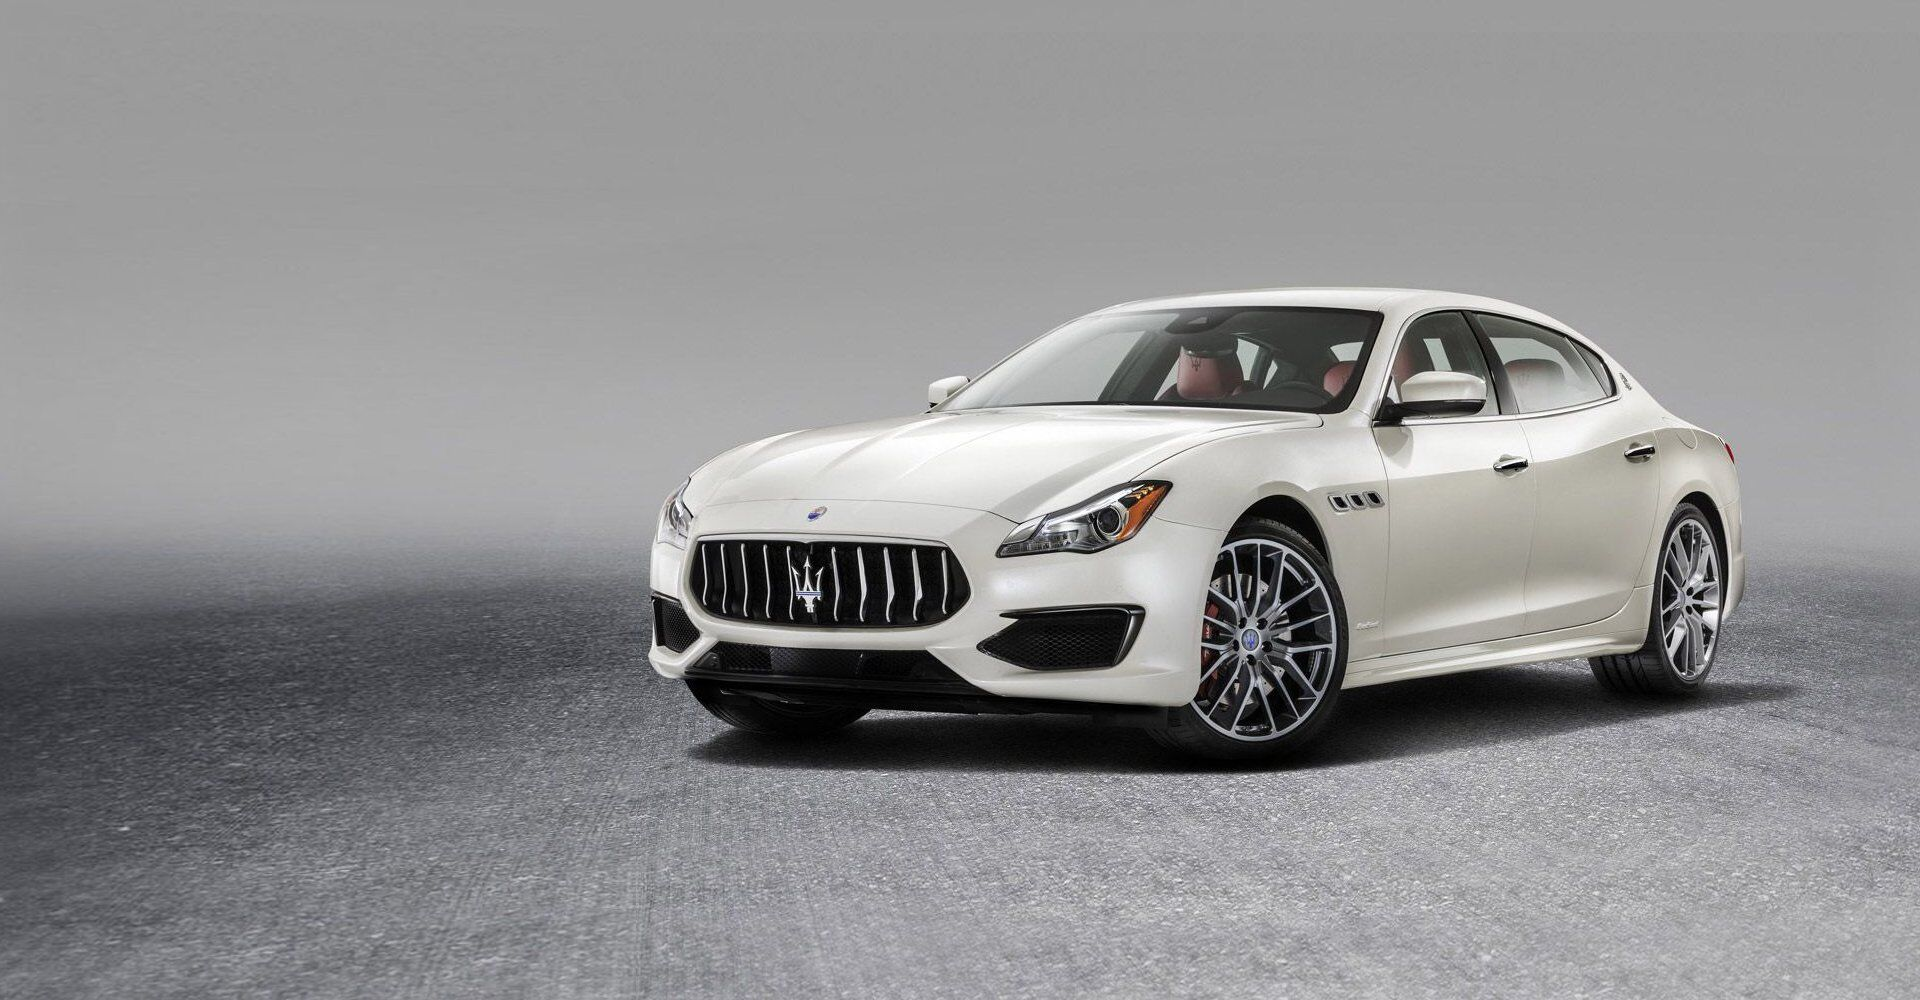 The New 2017 Quattroporte